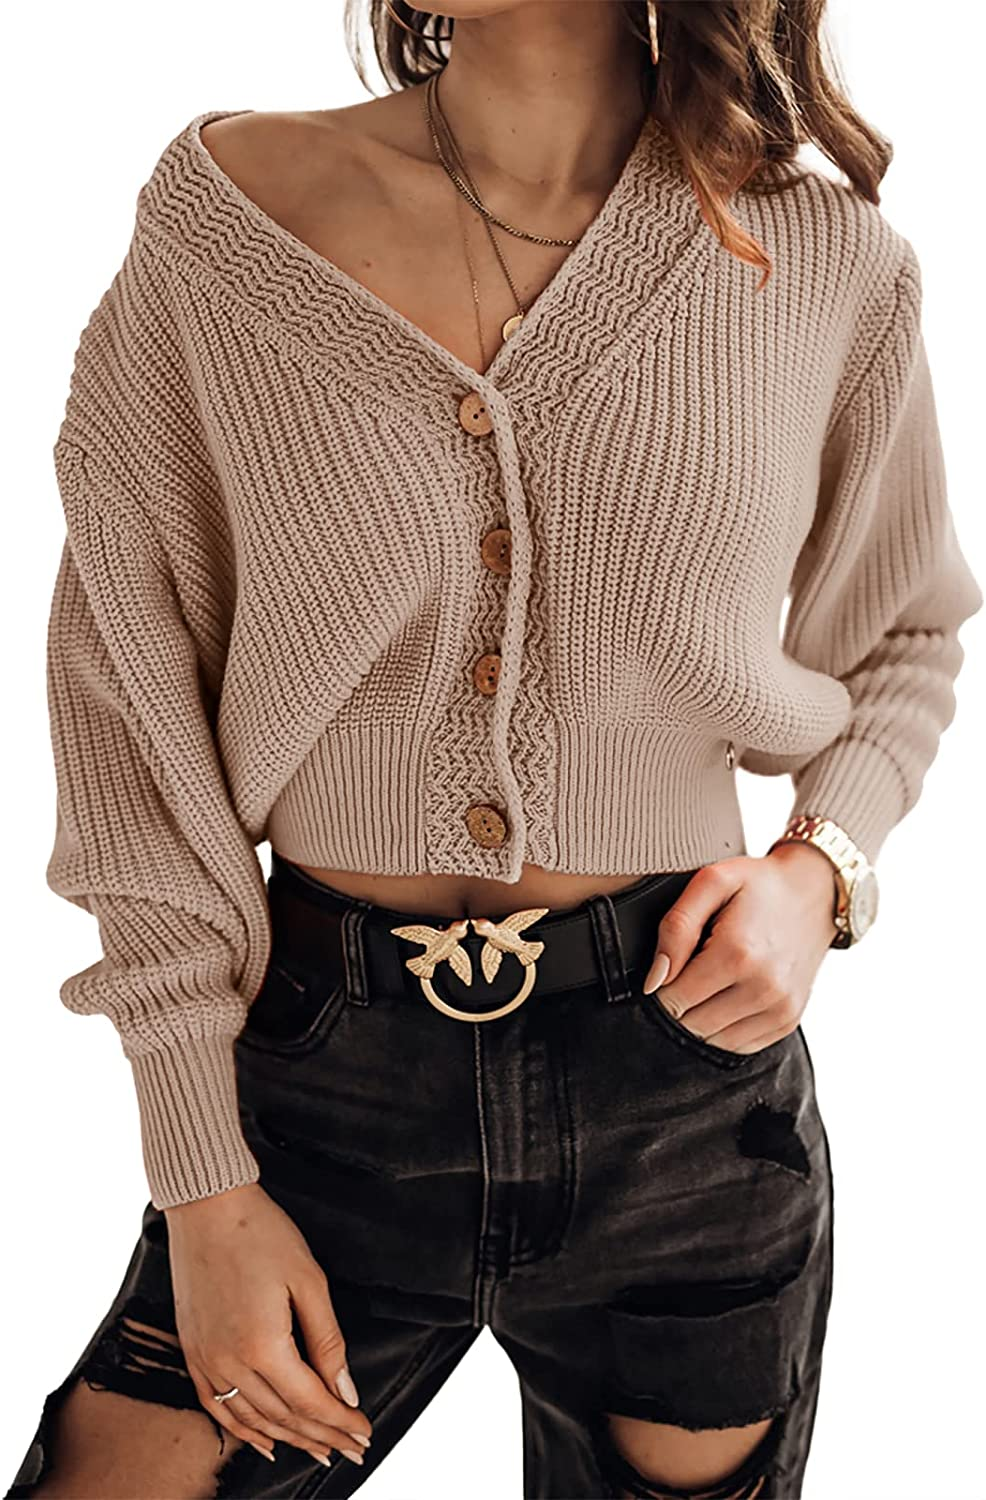 Women's Long Sleeve V-Neck Button Down Cropped Cardigans Rib Knit Lightweight Fall Sweater Tops